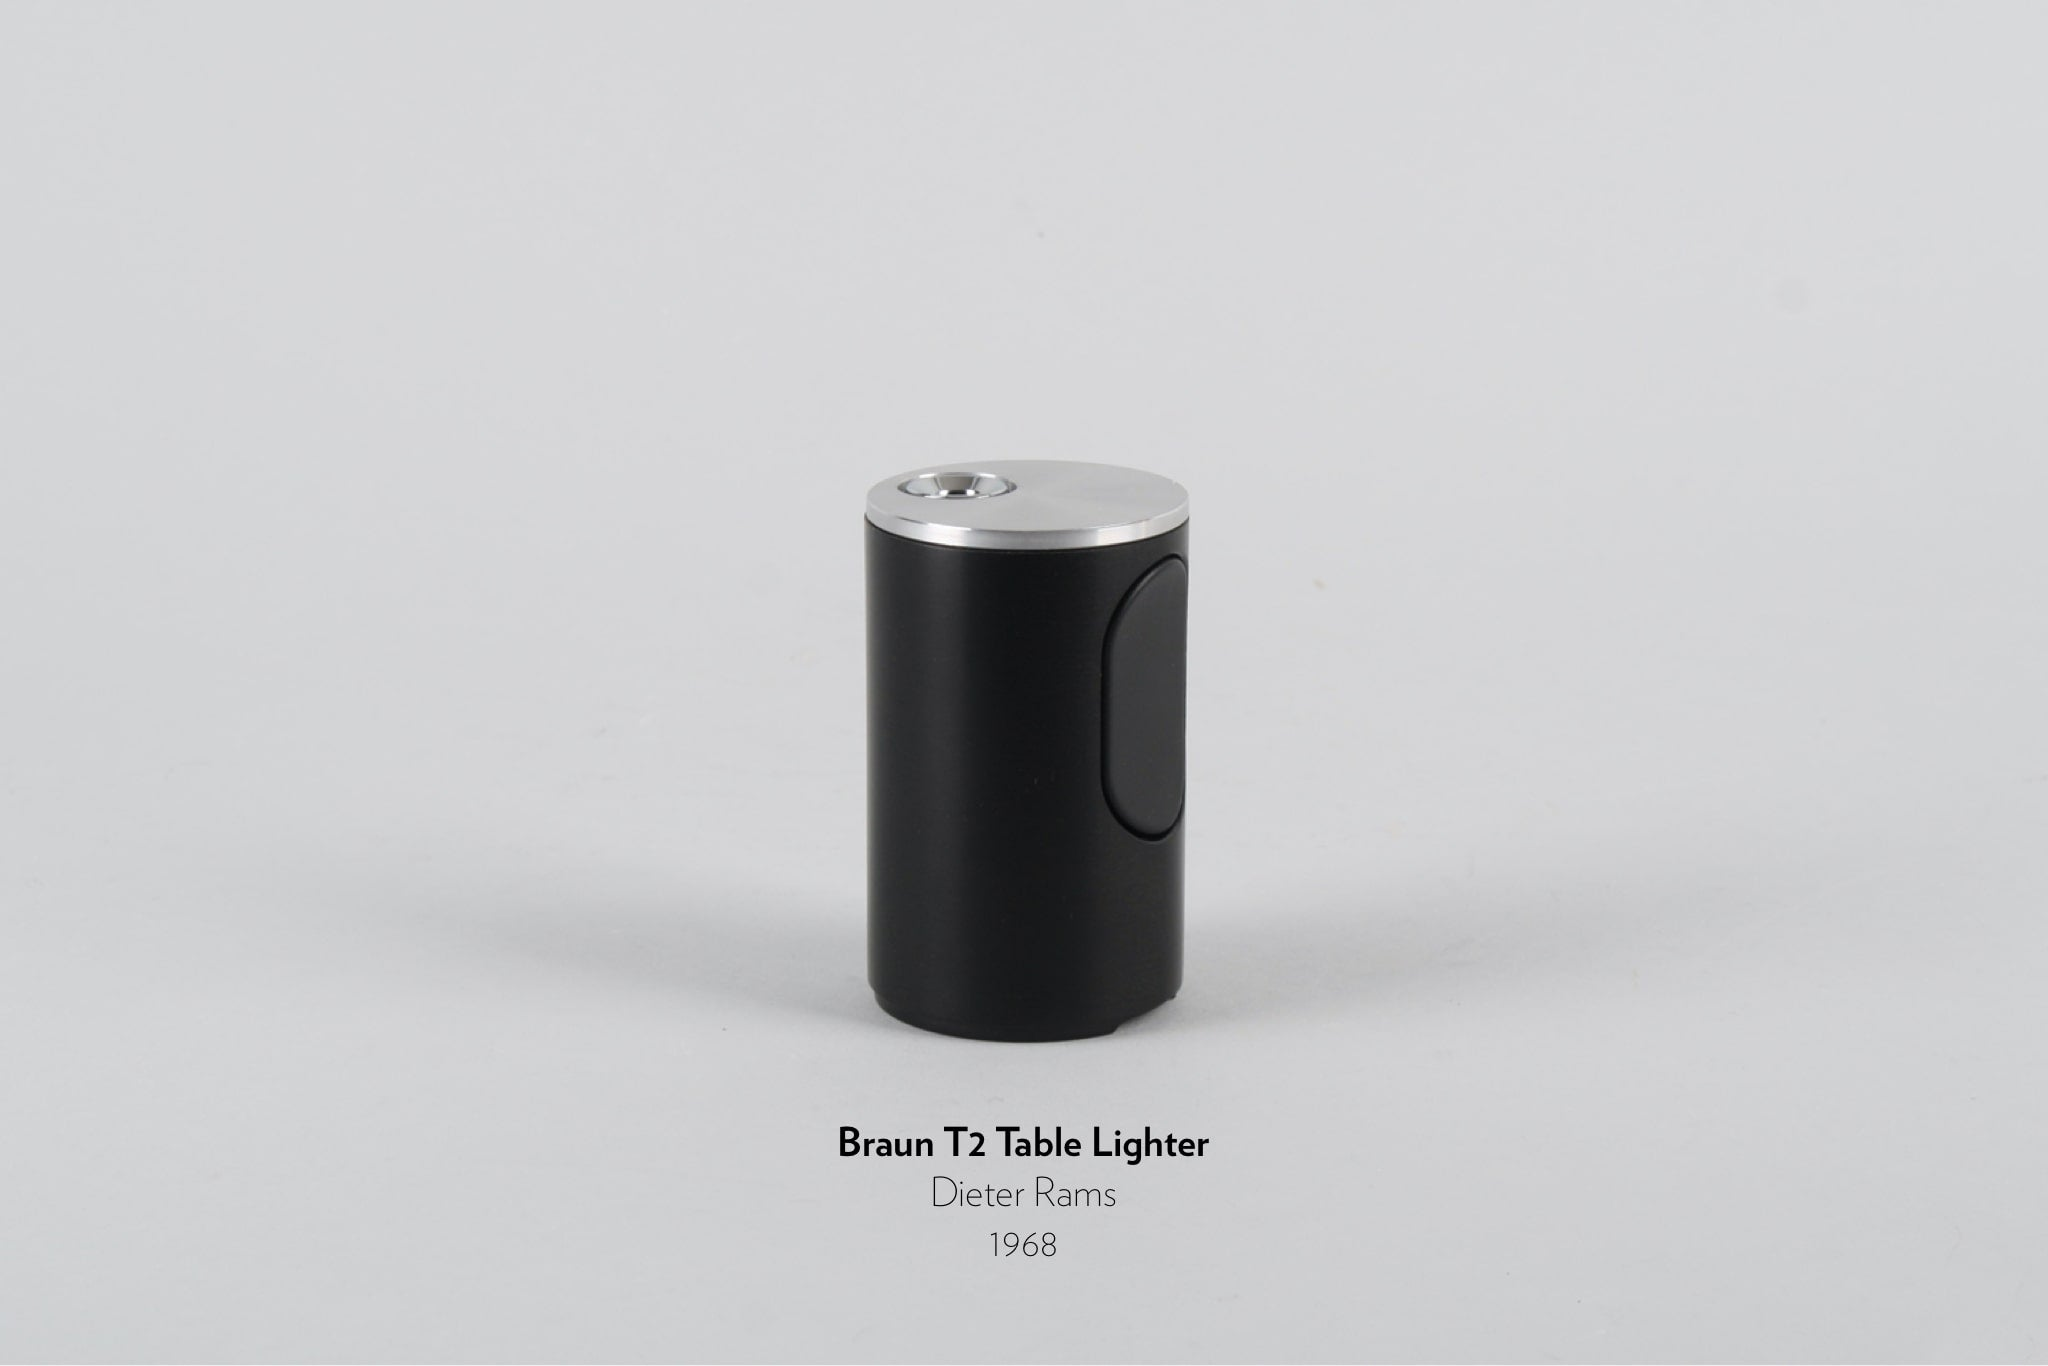 Braun T2 Table Lighter designed by Dieter Rams in 1968.